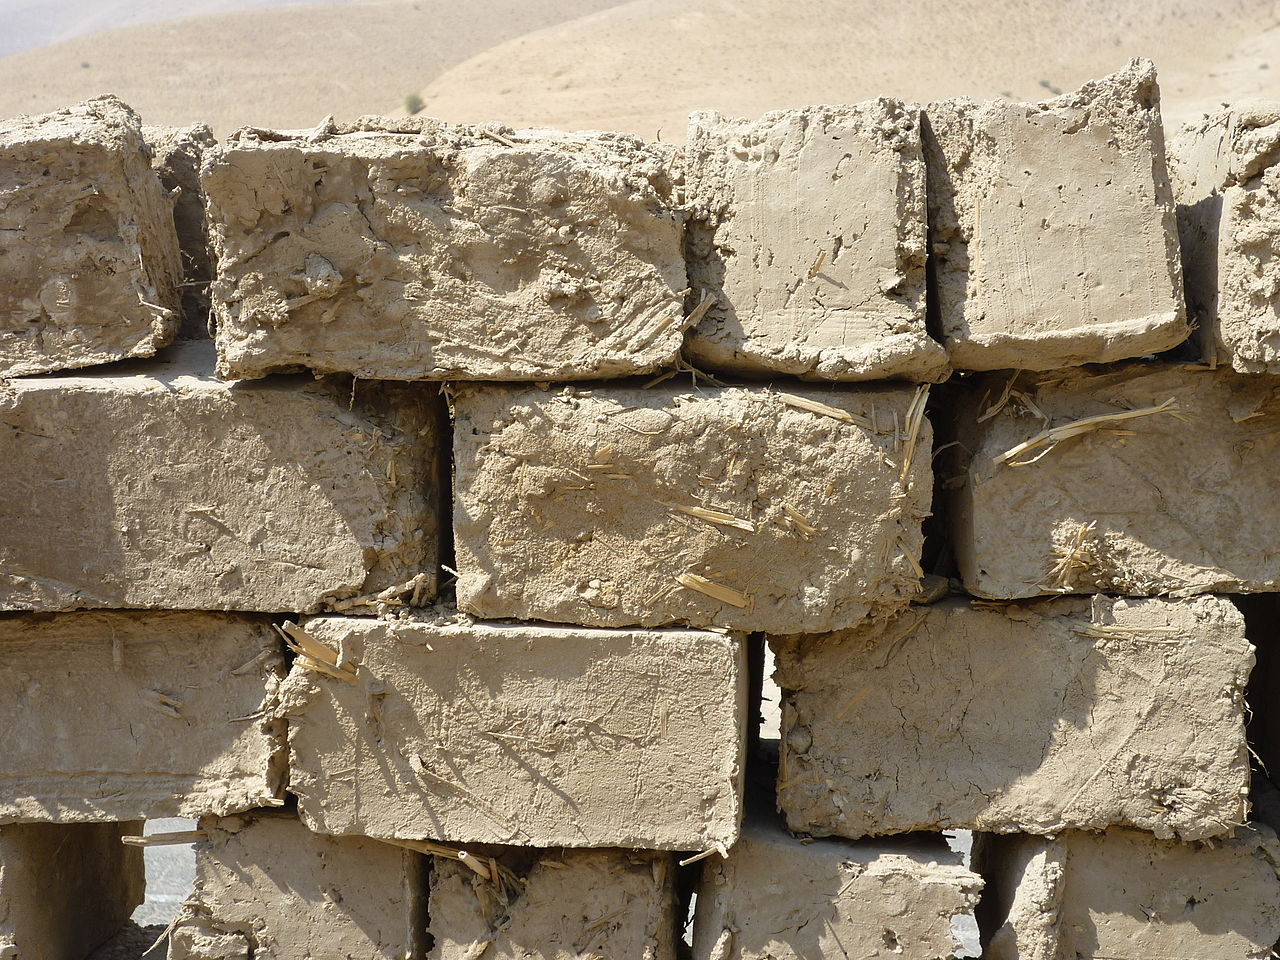 Modern Mud Bricks